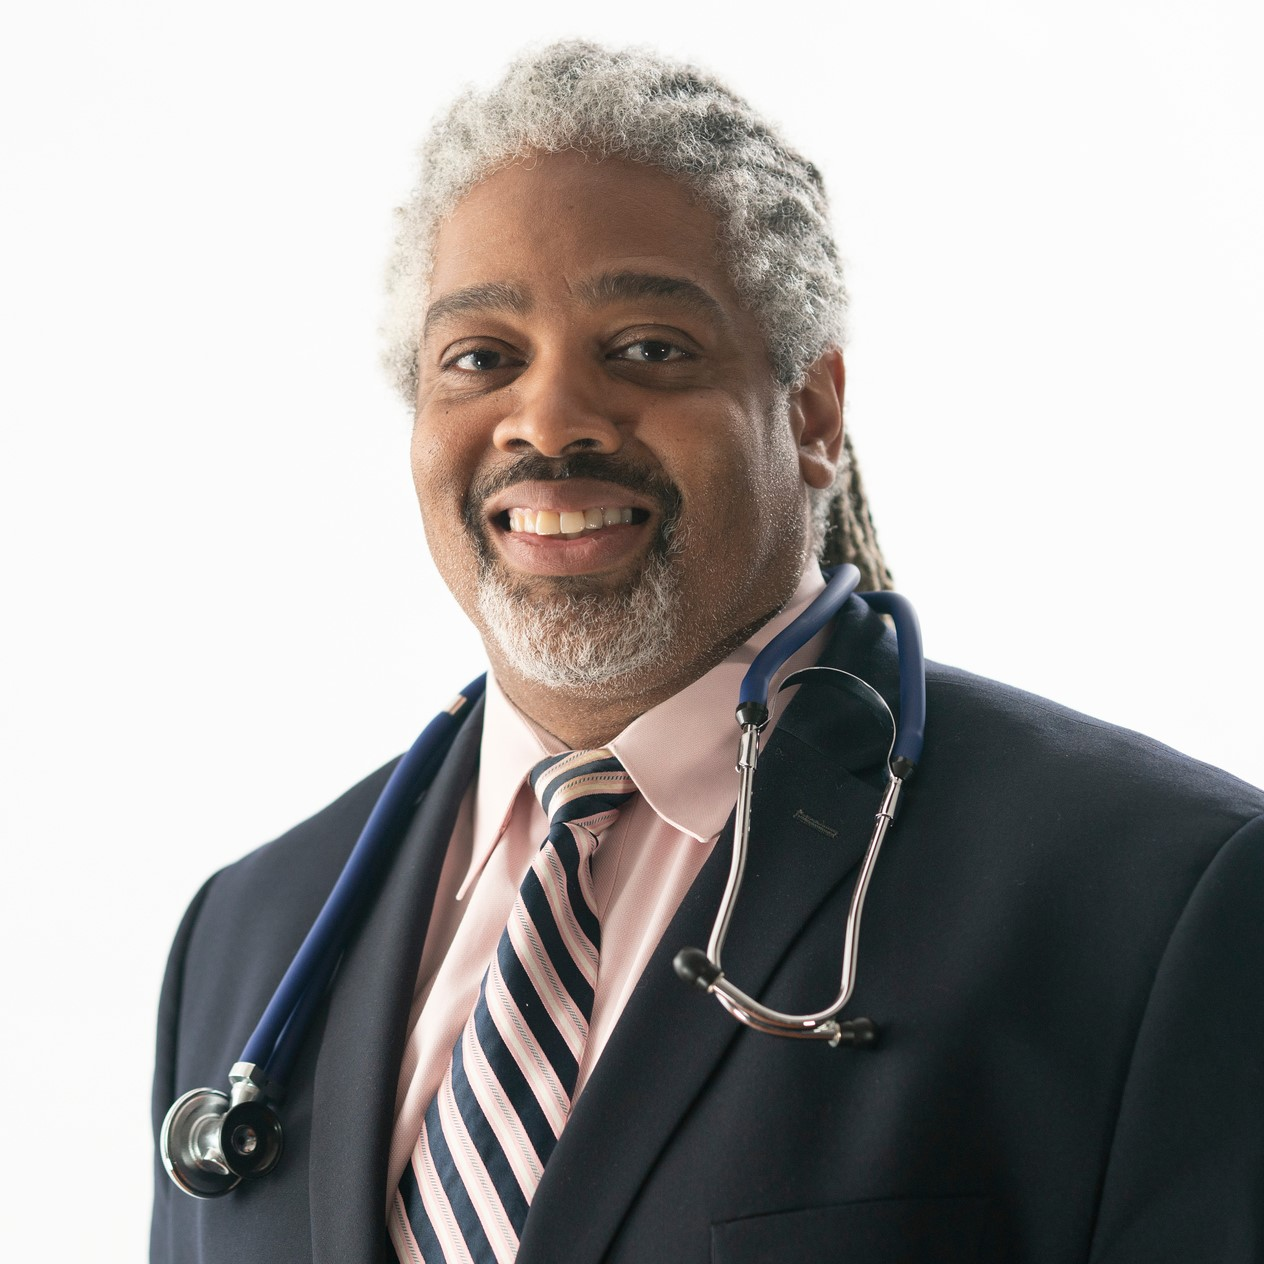 Dr. H. Steven Sims, Director and Laryngologist at CIVC